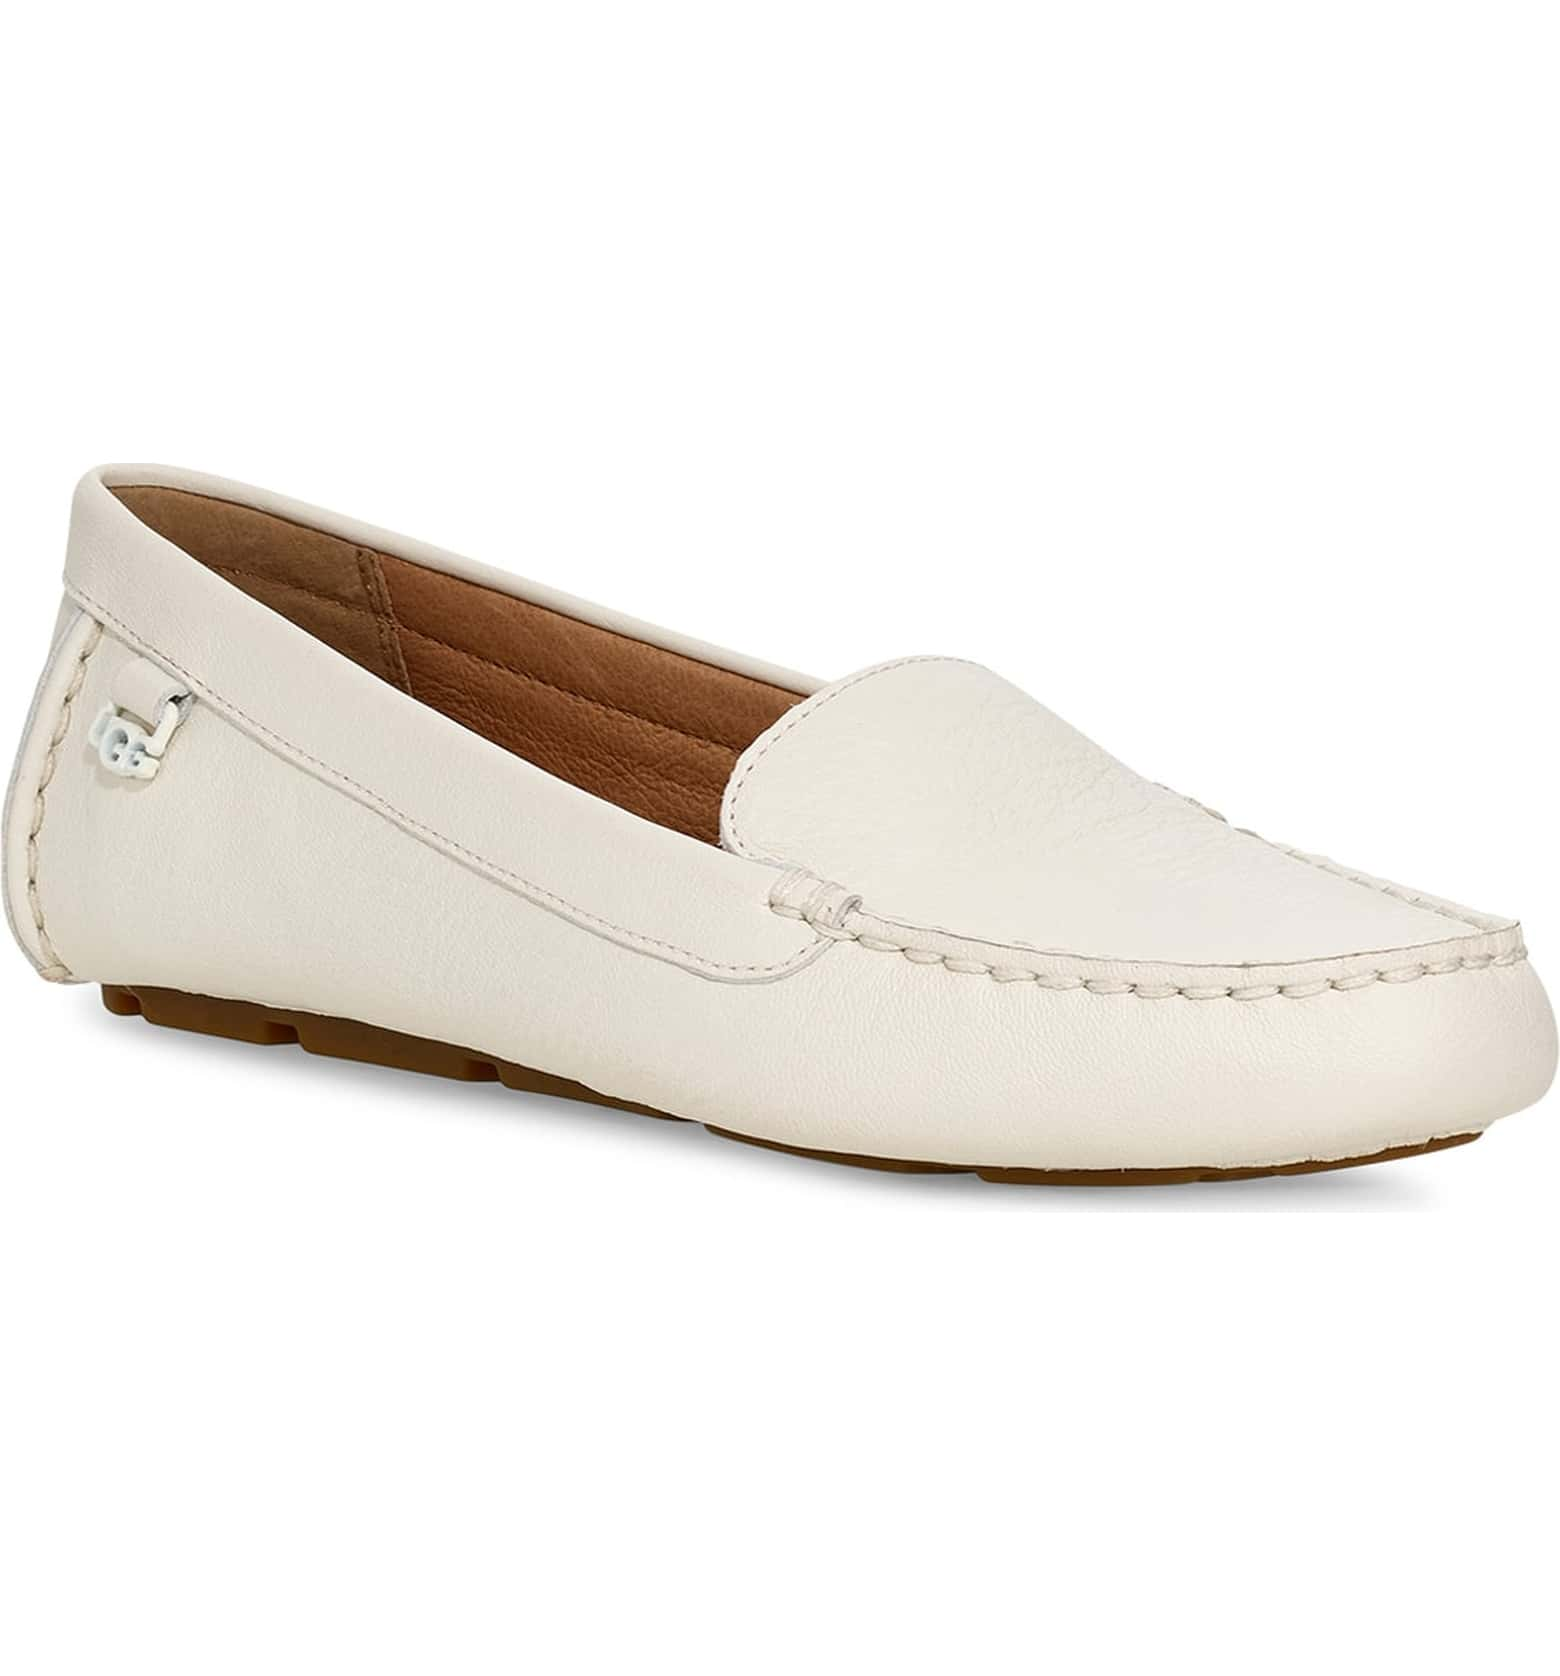 Loafers - Loafers are great for traveling through the airport or long car rides. They look polished but are comfortable and easy to take off.